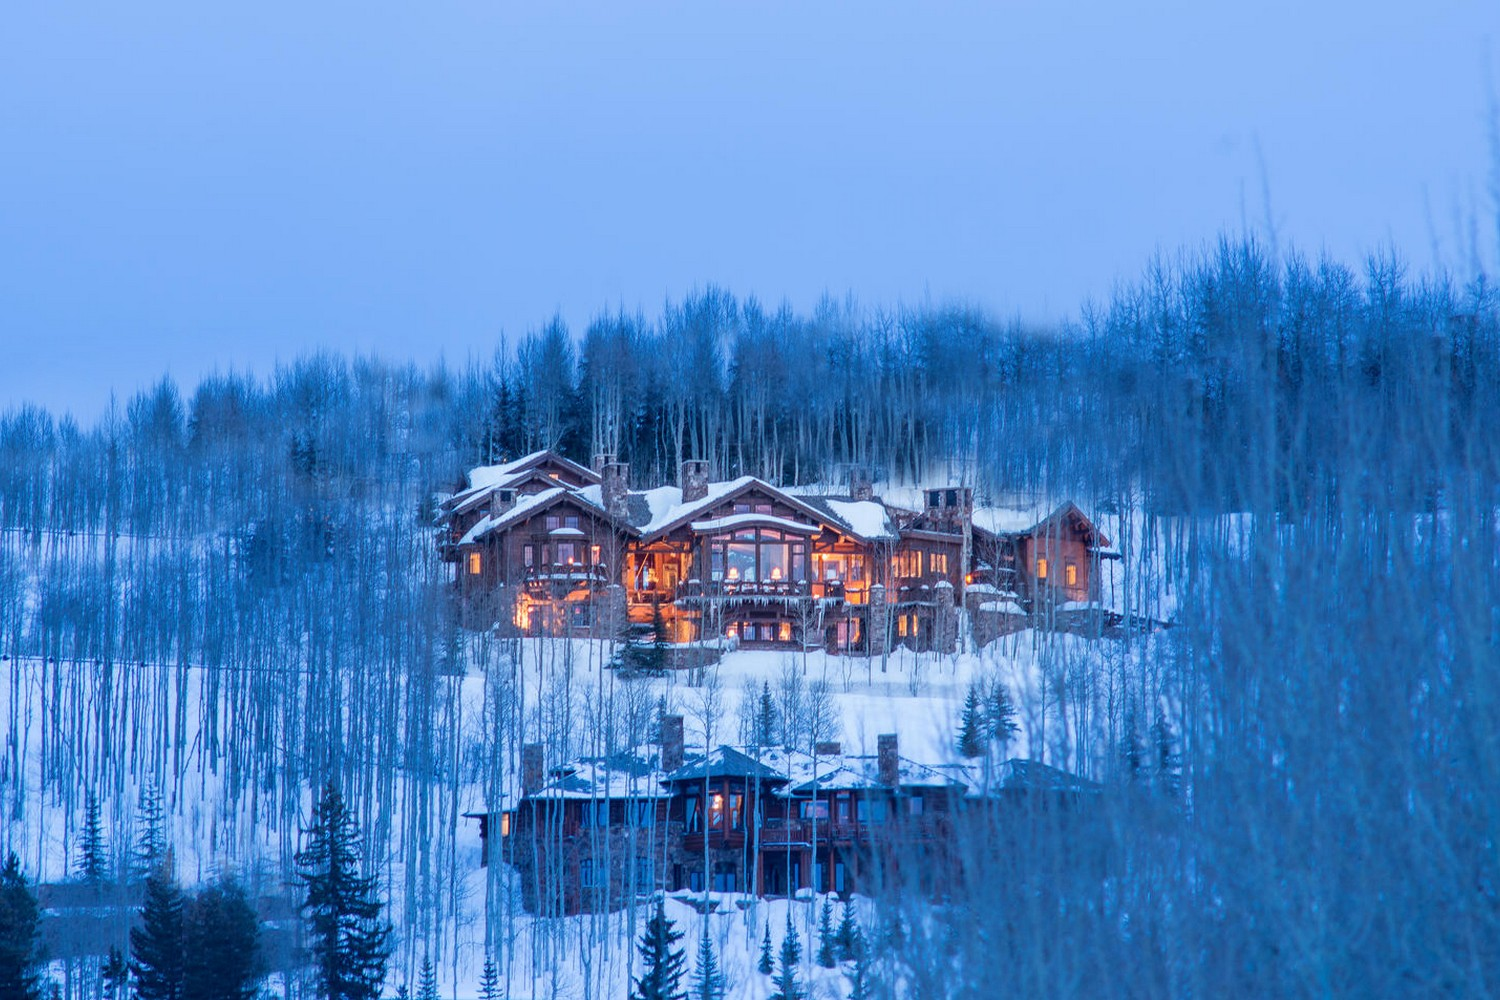 Casa Unifamiliar por un Venta en Unrivaled European Estate in Bachelor Gulch 2150 Daybreak Ridge Bachelor Gulch, Beaver Creek, Colorado, 81620 Estados Unidos